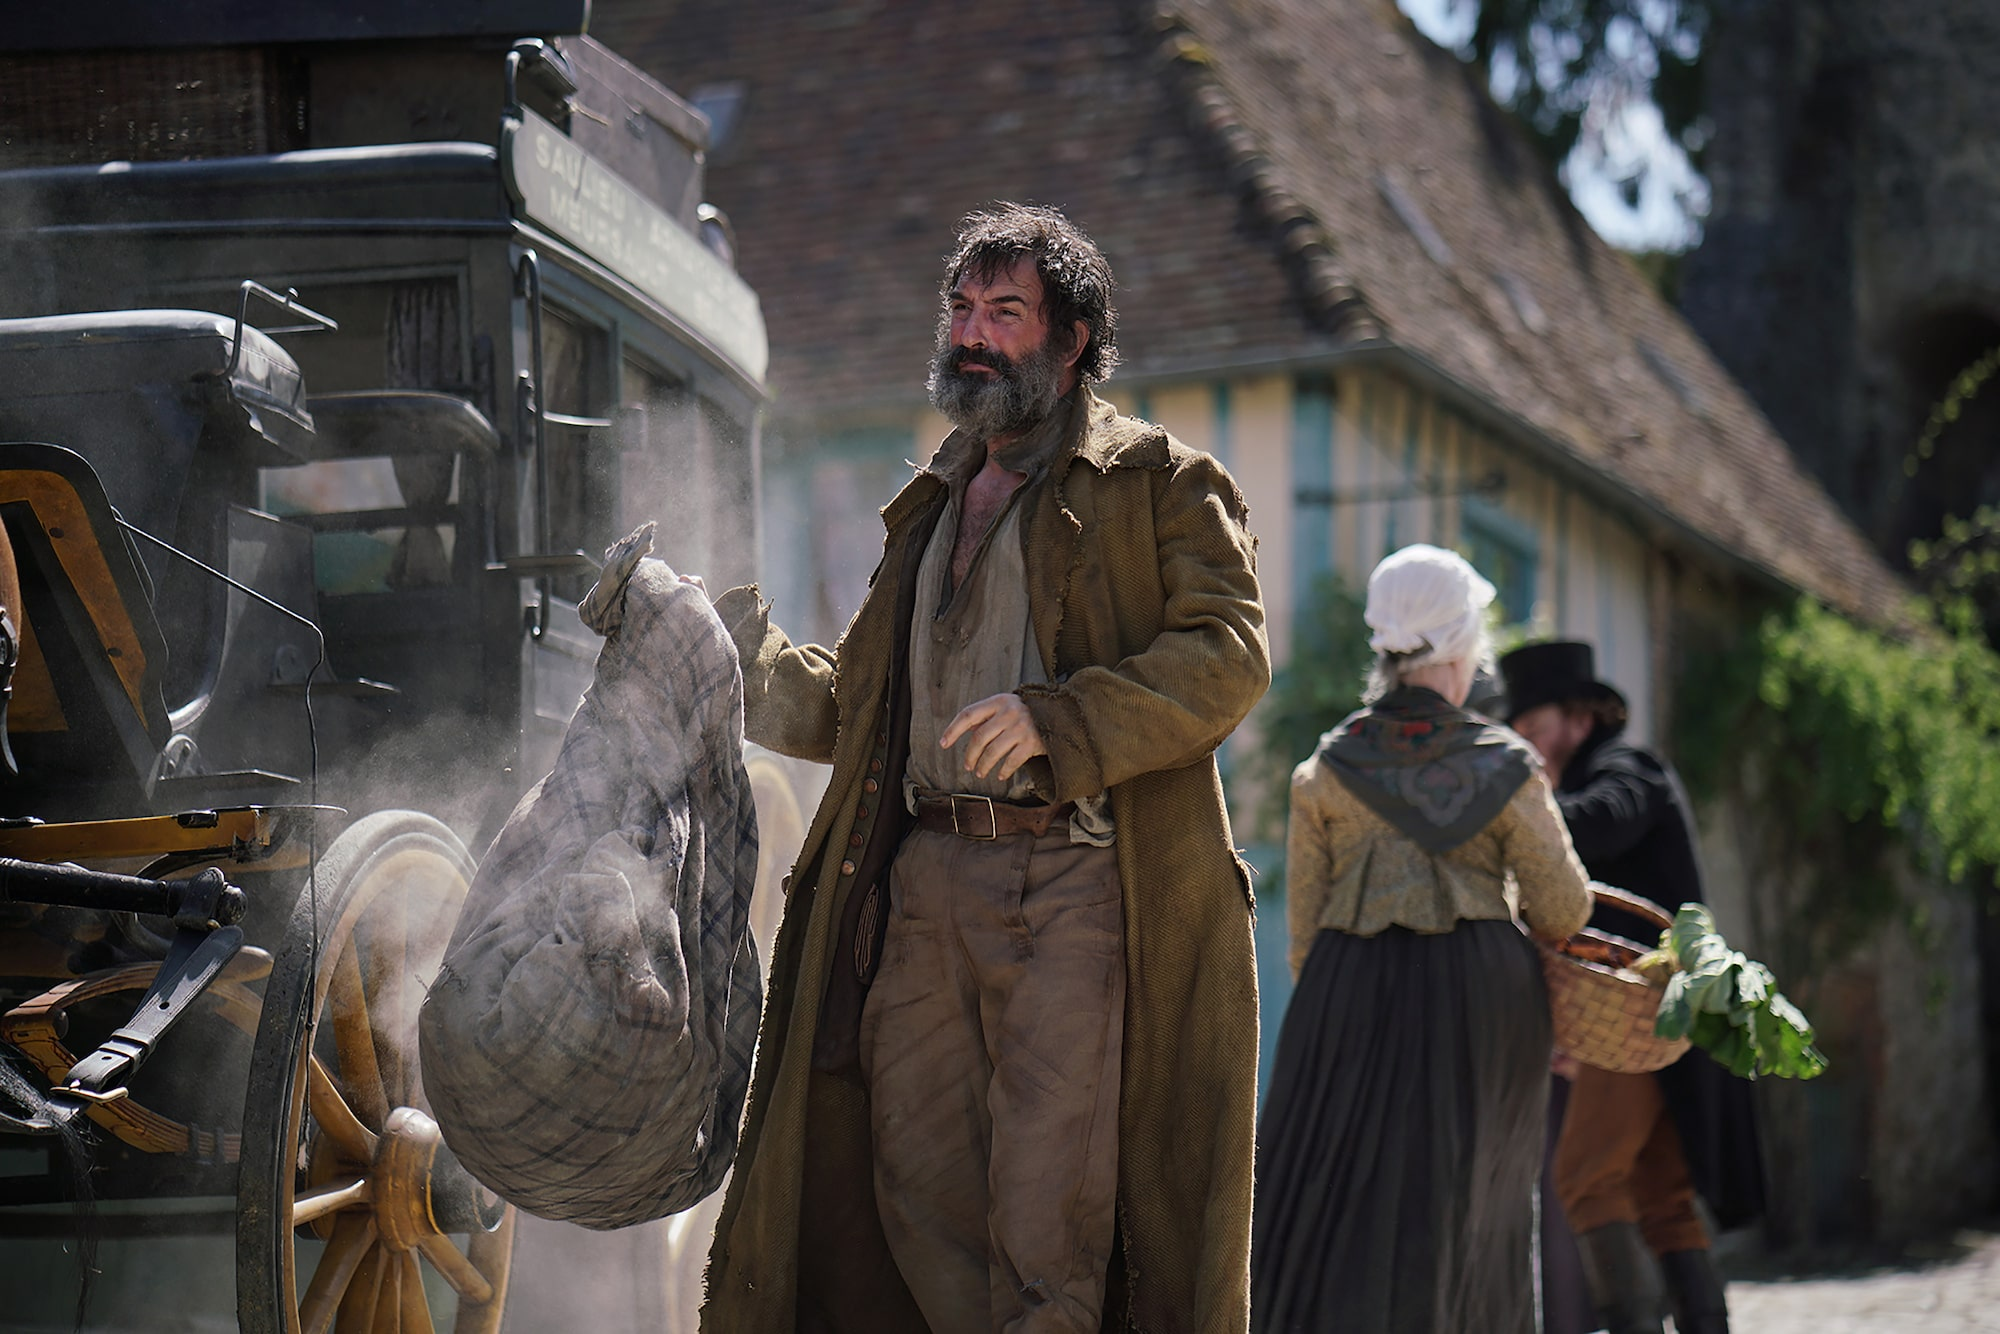 Christophe Brachet Sony Alpha 7RII french actor dressed in rags holds a sack standing next to a stagecoach